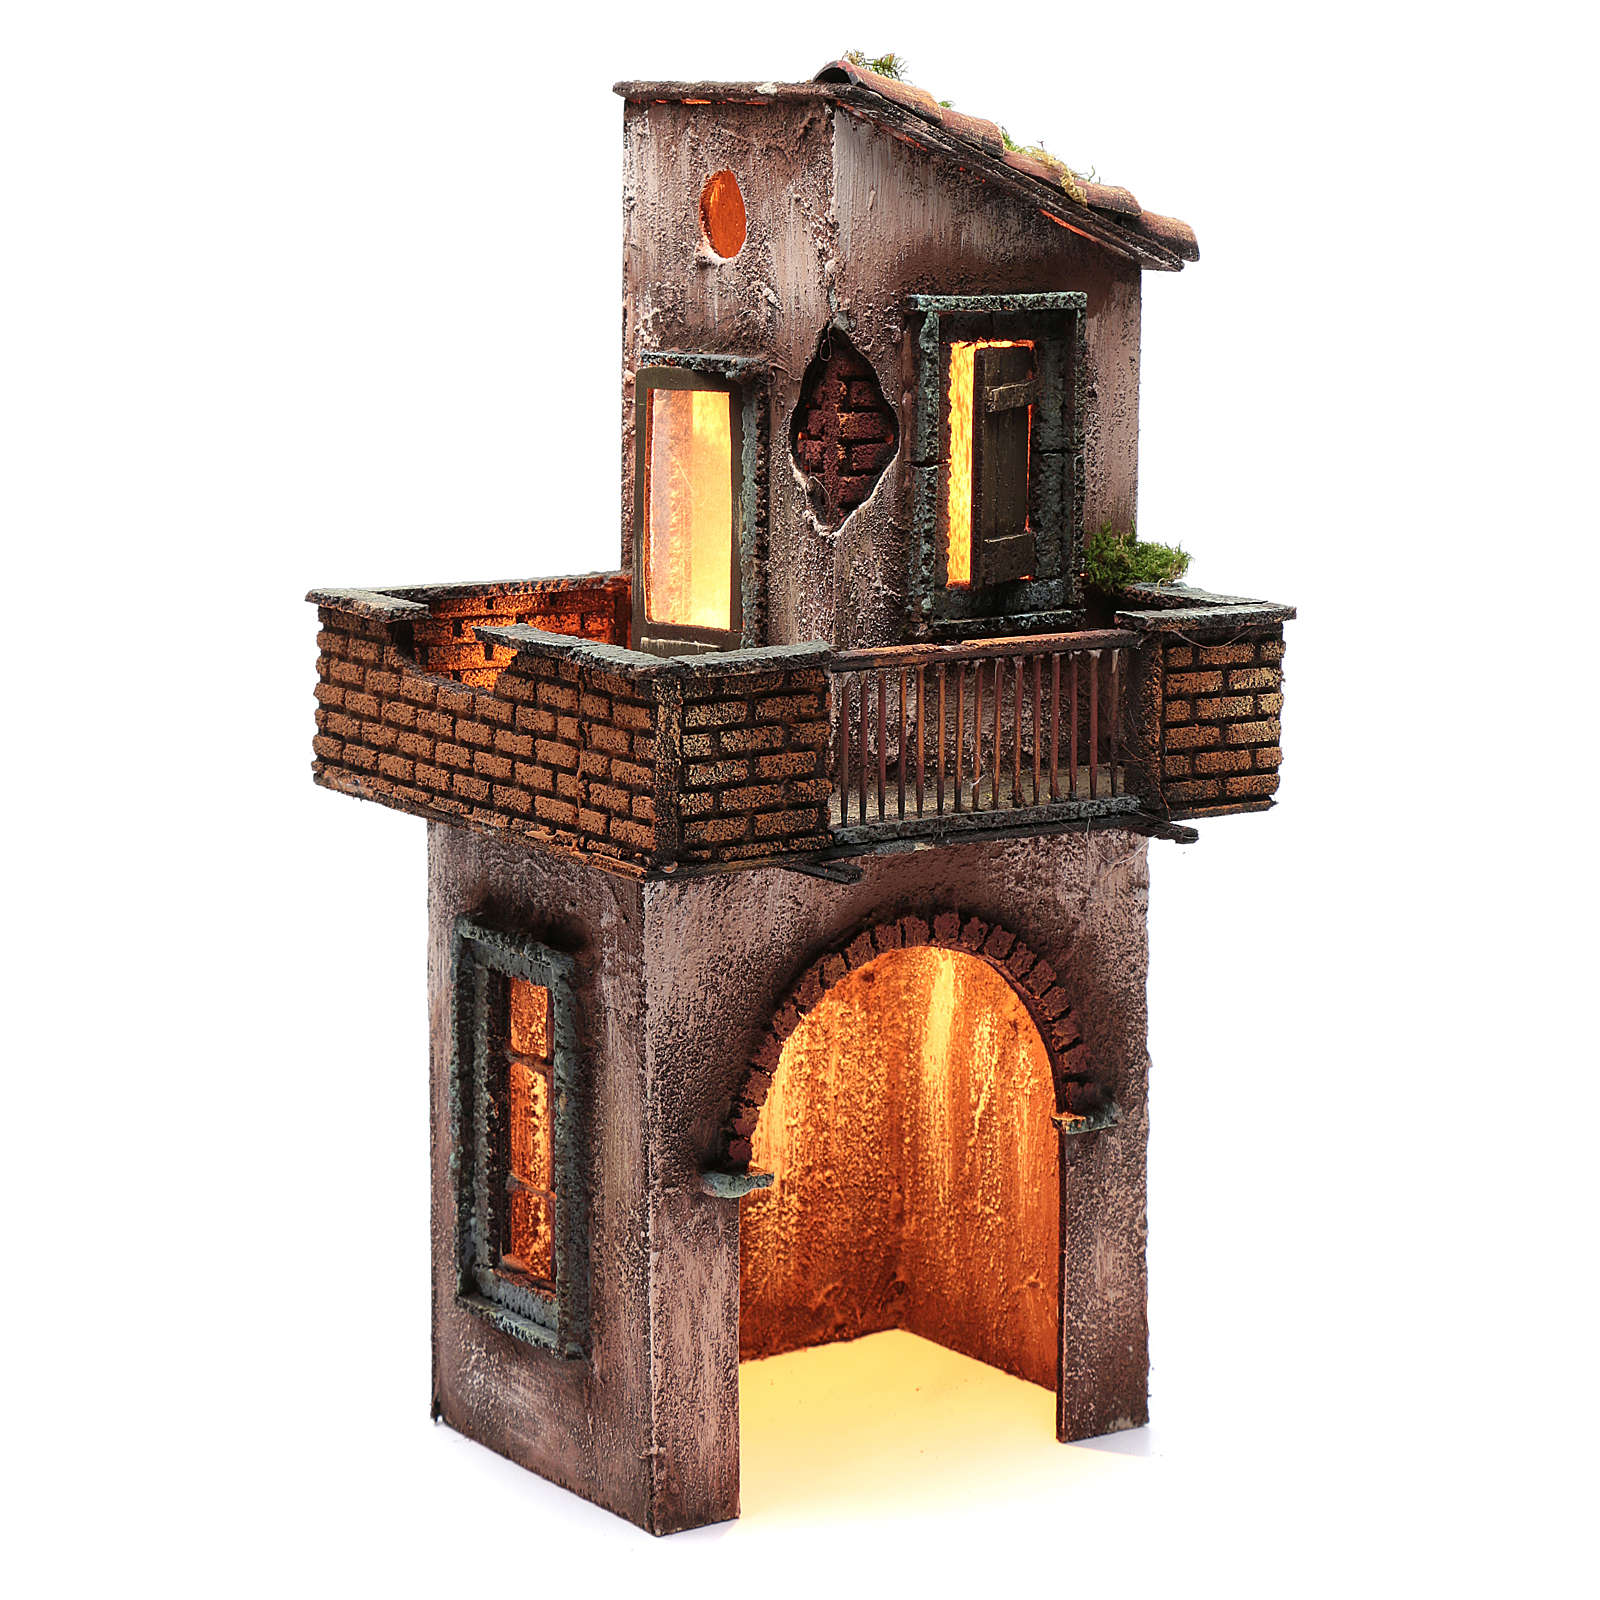 Neapolitan nativity scene setting with wooden house 41X22X20 cm 4